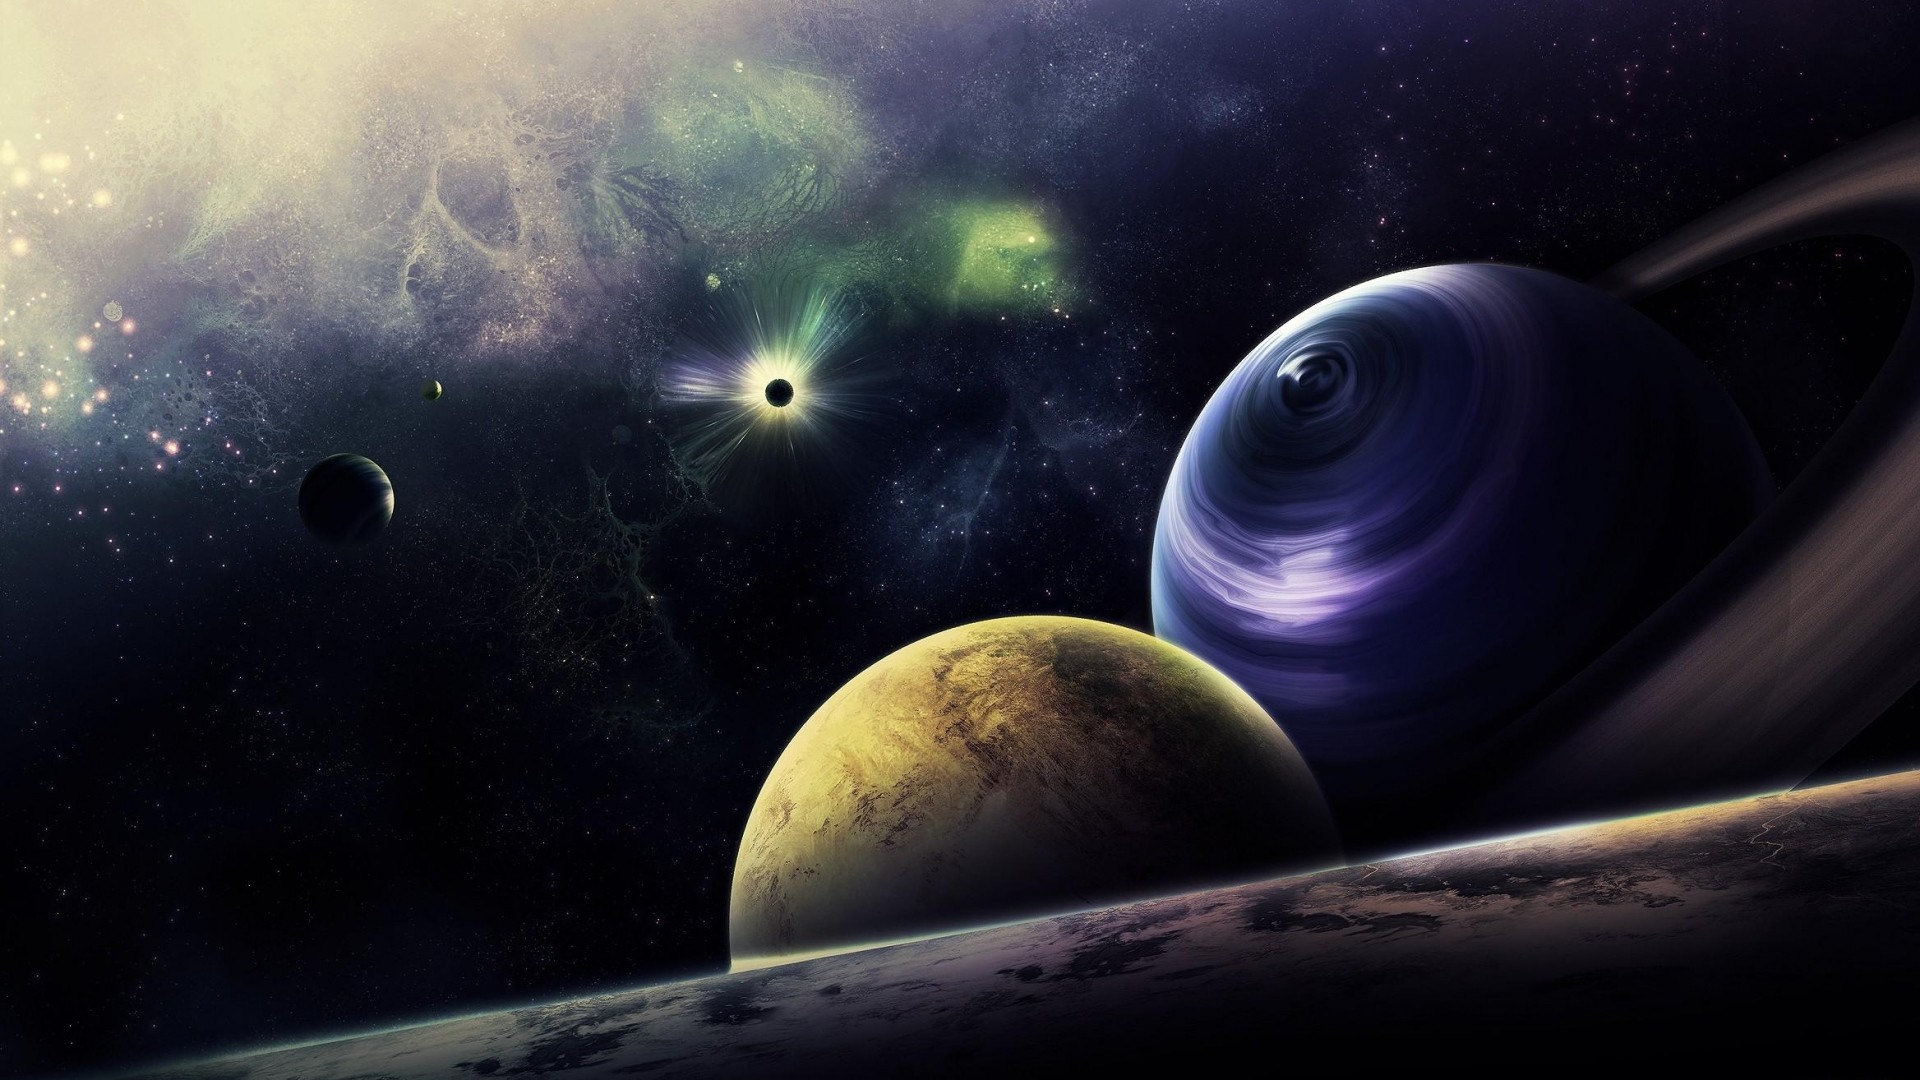 Galaxy wallpaper 1080p 79 images - Solar system hd wallpapers 1080p ...